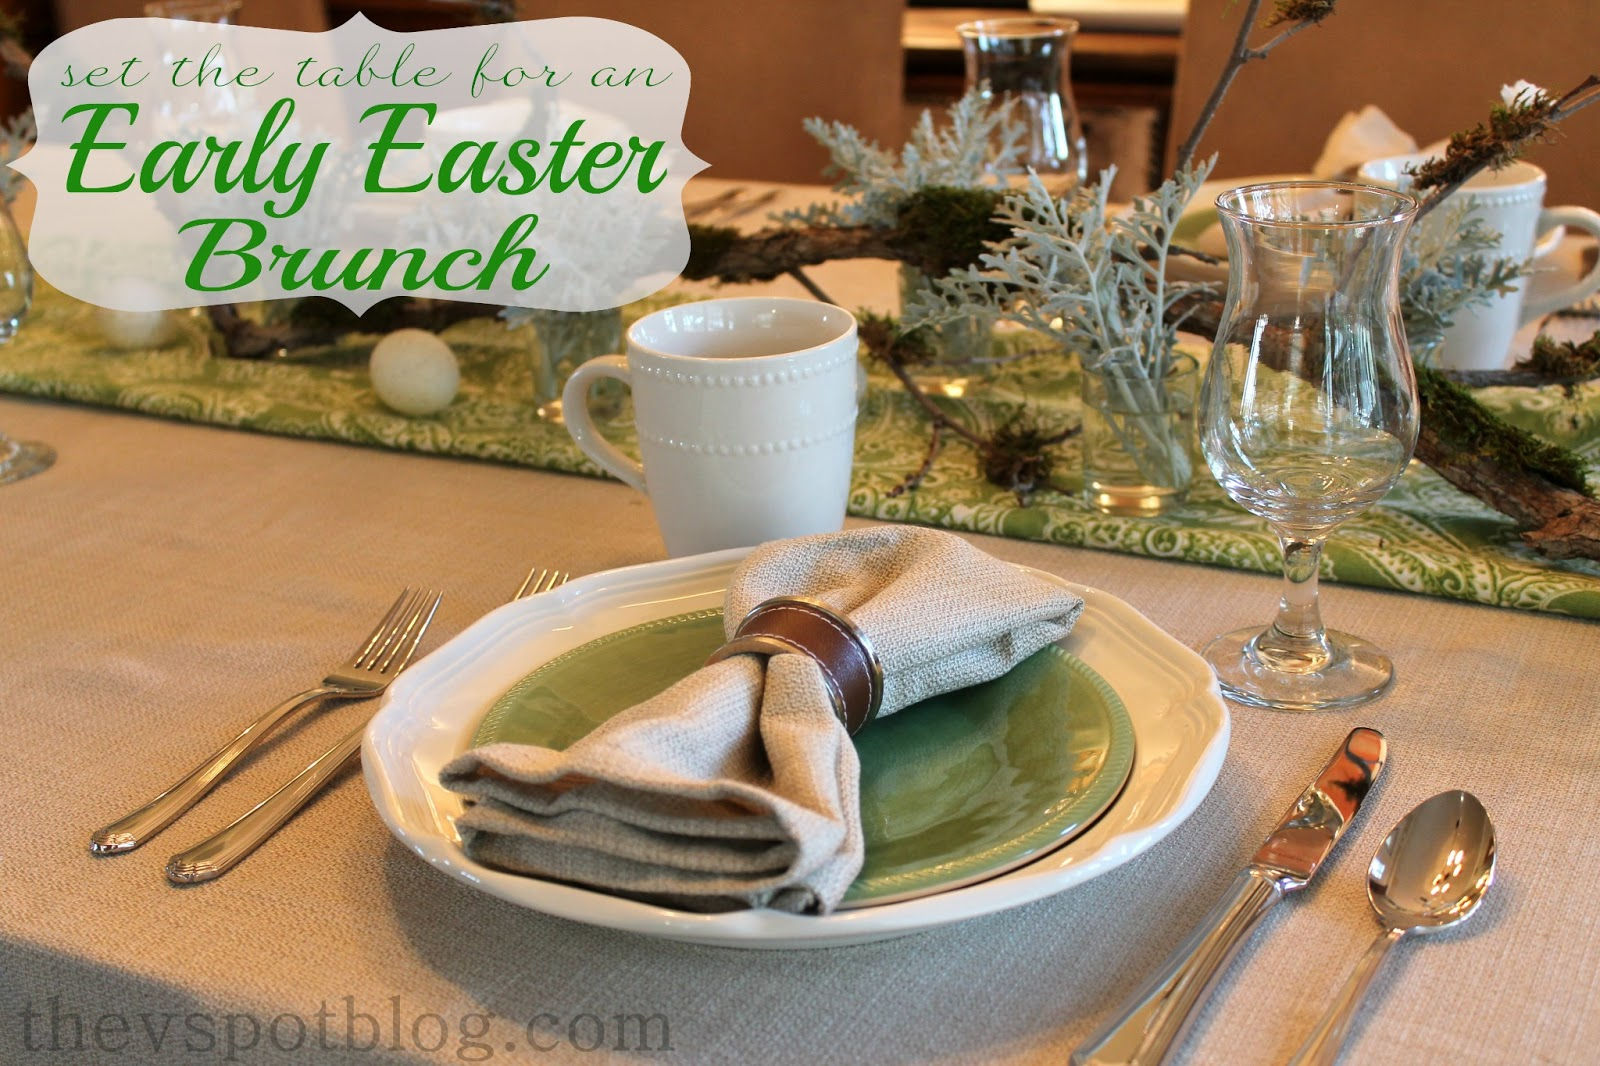 Tablescape ideas for an early easter brunch the v spot for Table 6 brunch